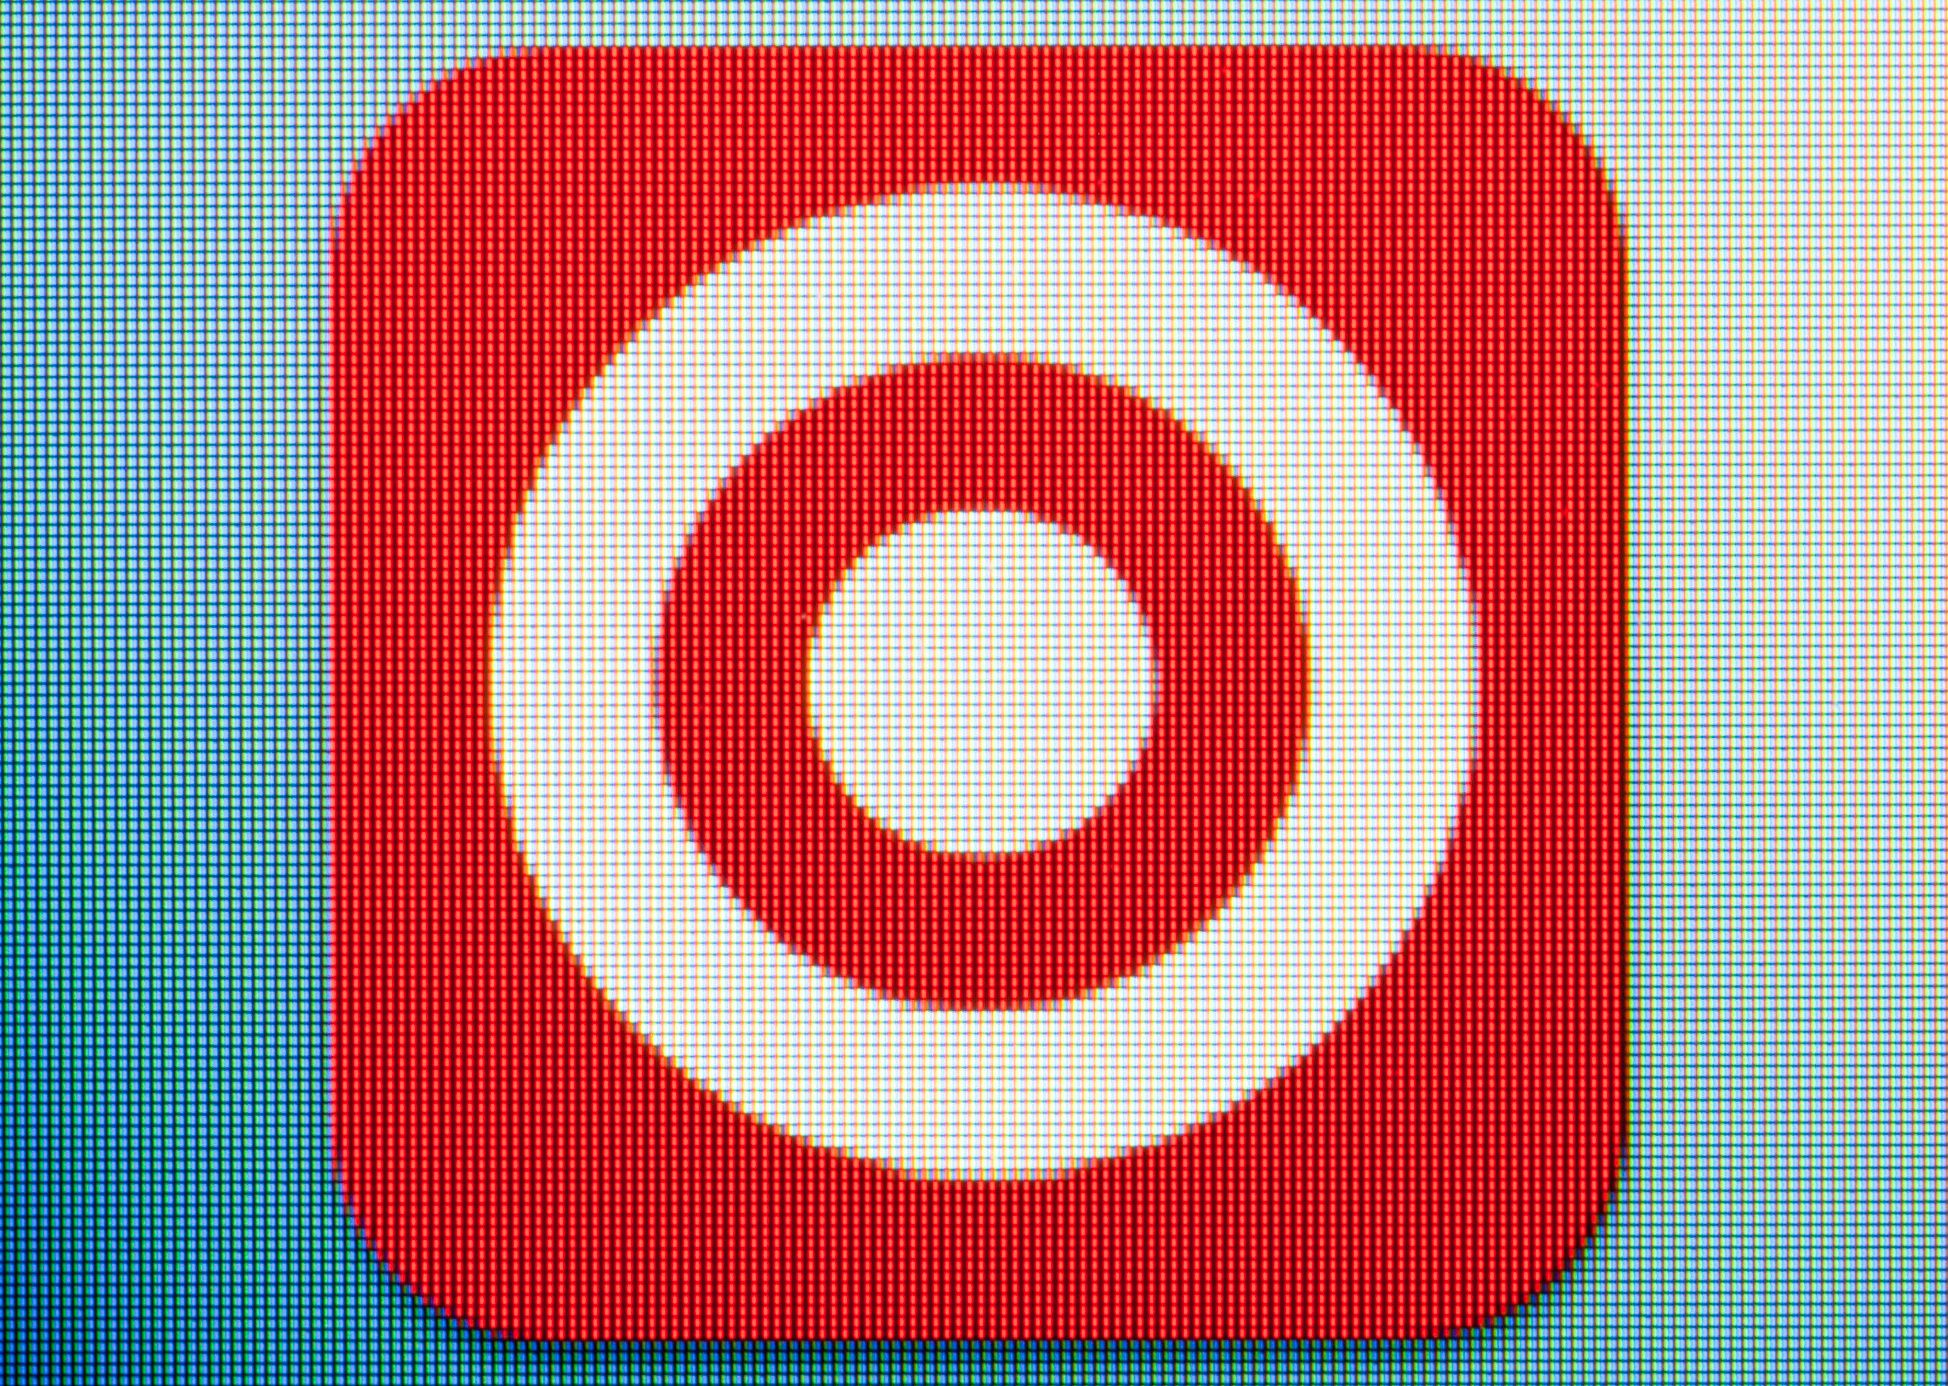 An image of the Target app.